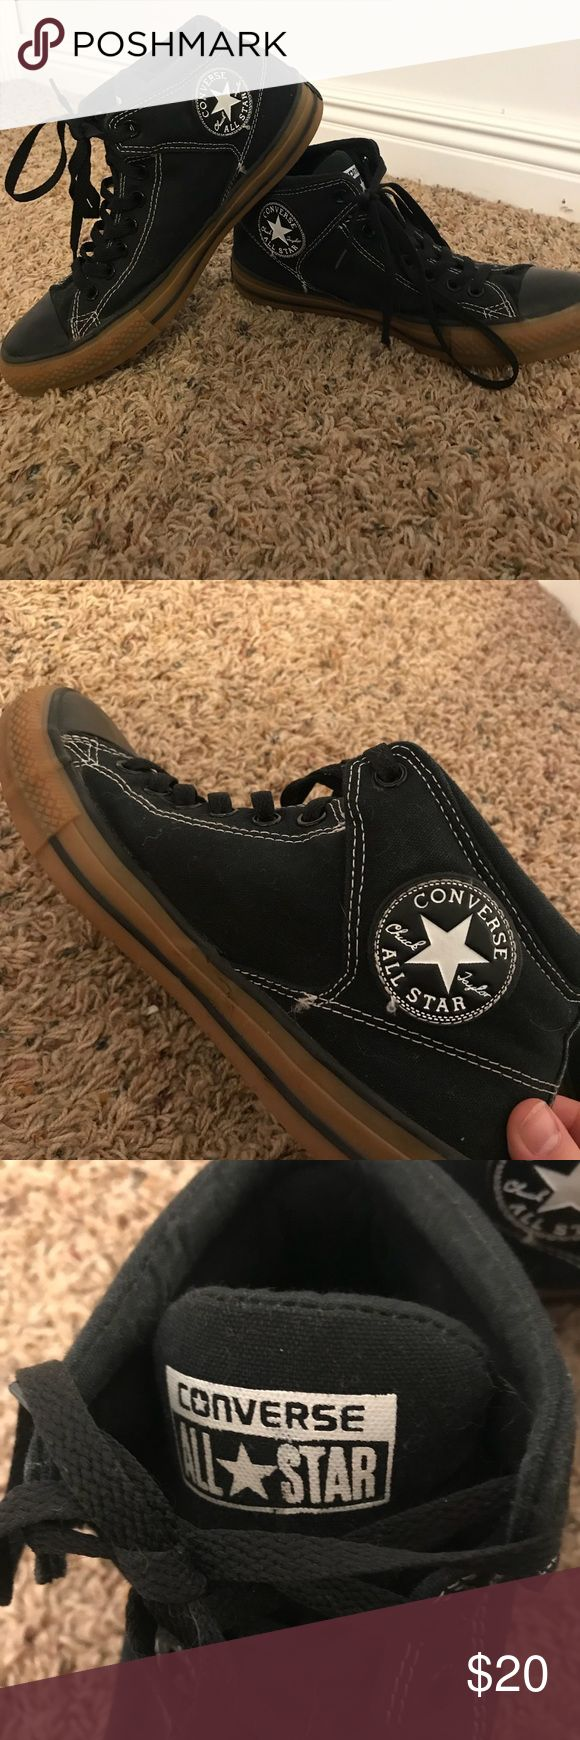 Men's black high top converse size 9 Black high top converse men's size 9. Have minor ware and tear, but are still in great shape, and look good!! 20 OBO Converse Shoes Sneakers